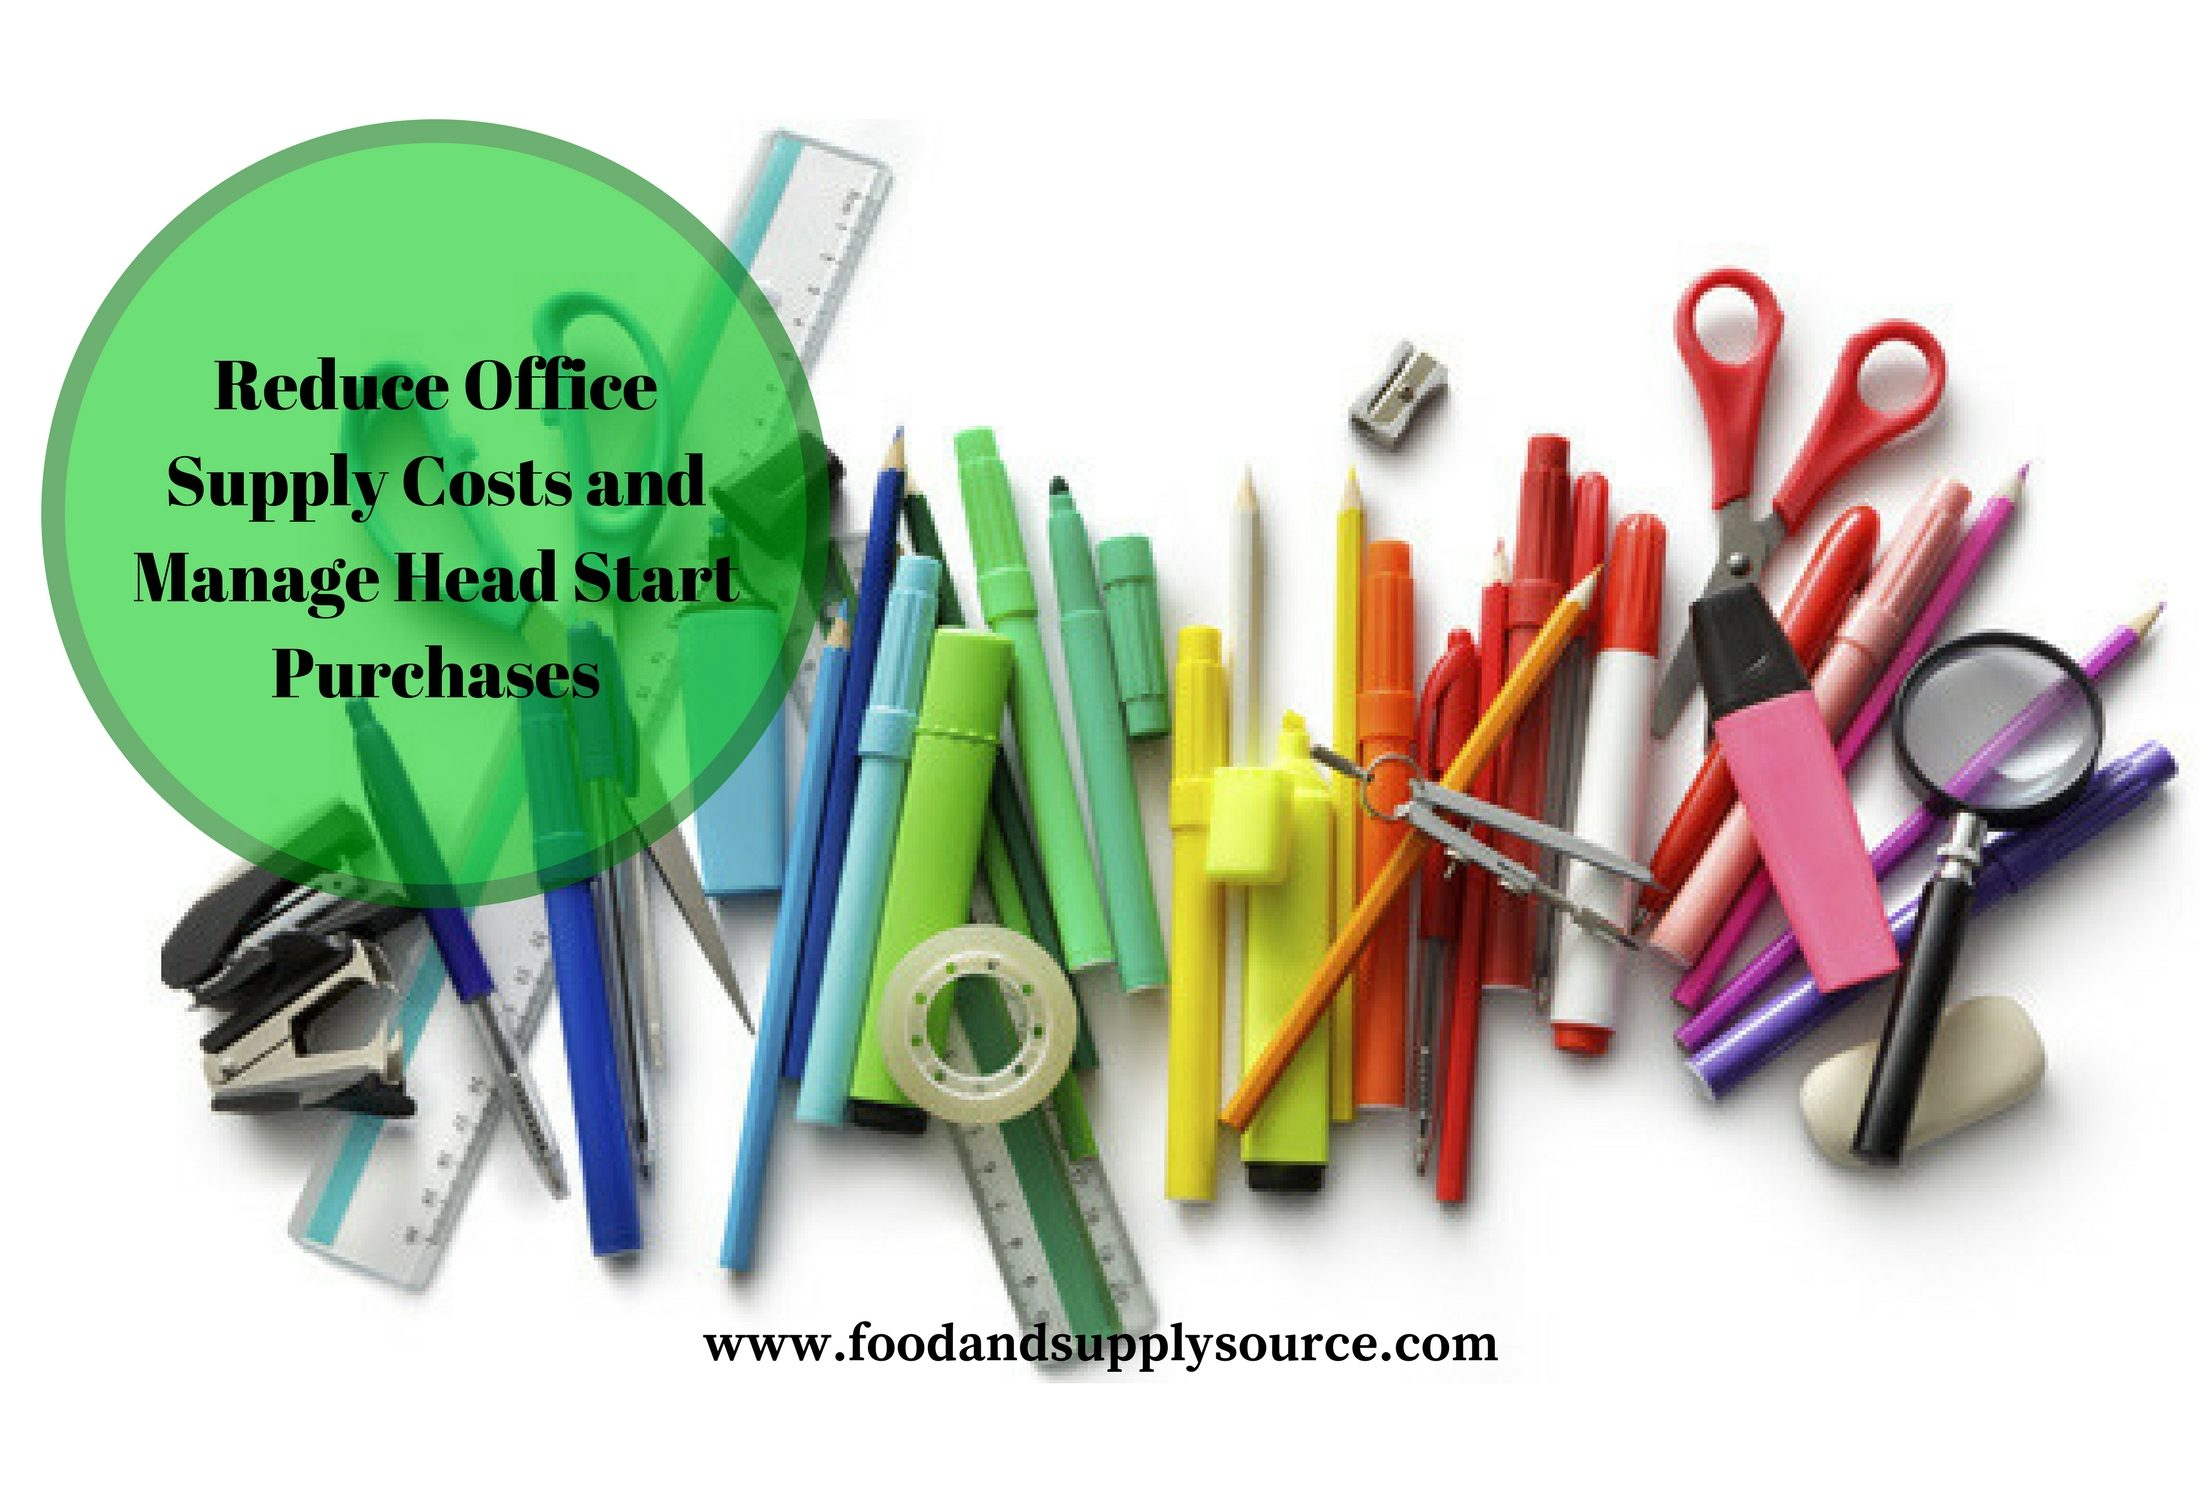 Reduce Office Supply Costanage Head Start Purchases